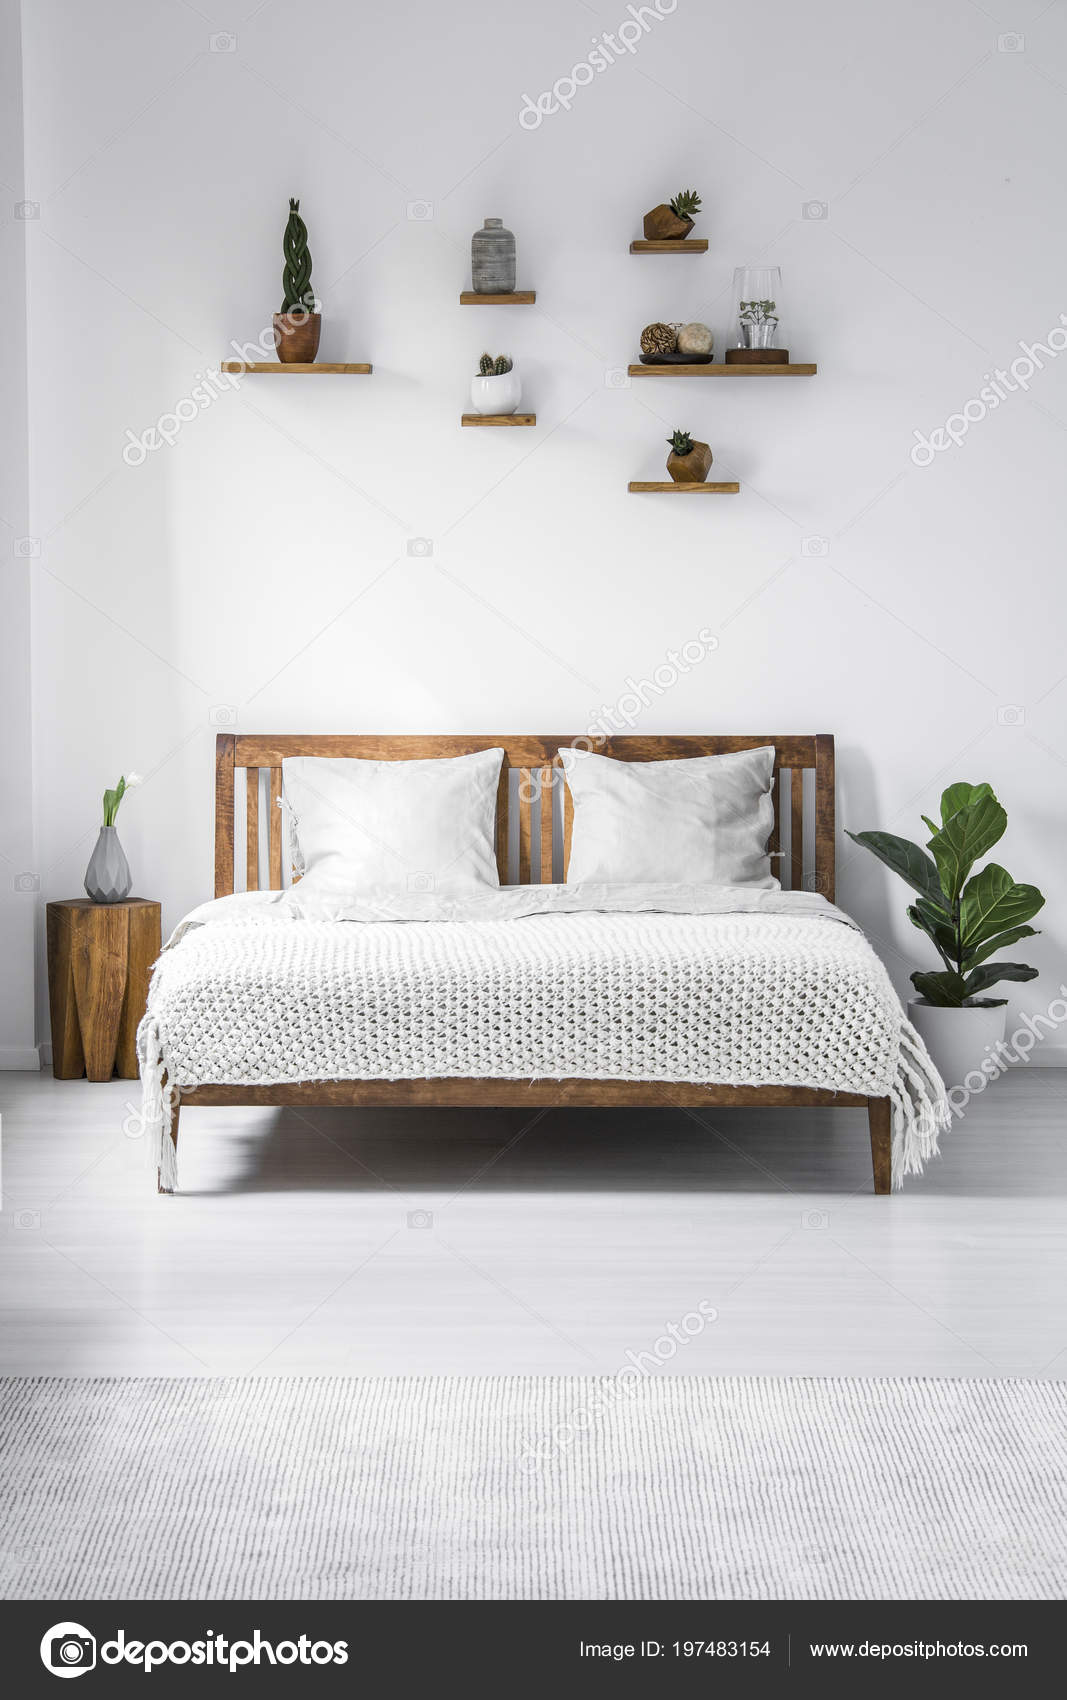 Mensola Sopra Letto Matrimoniale.Wooden Framed Double Bed Two Pillows Blanket Small Shelves White